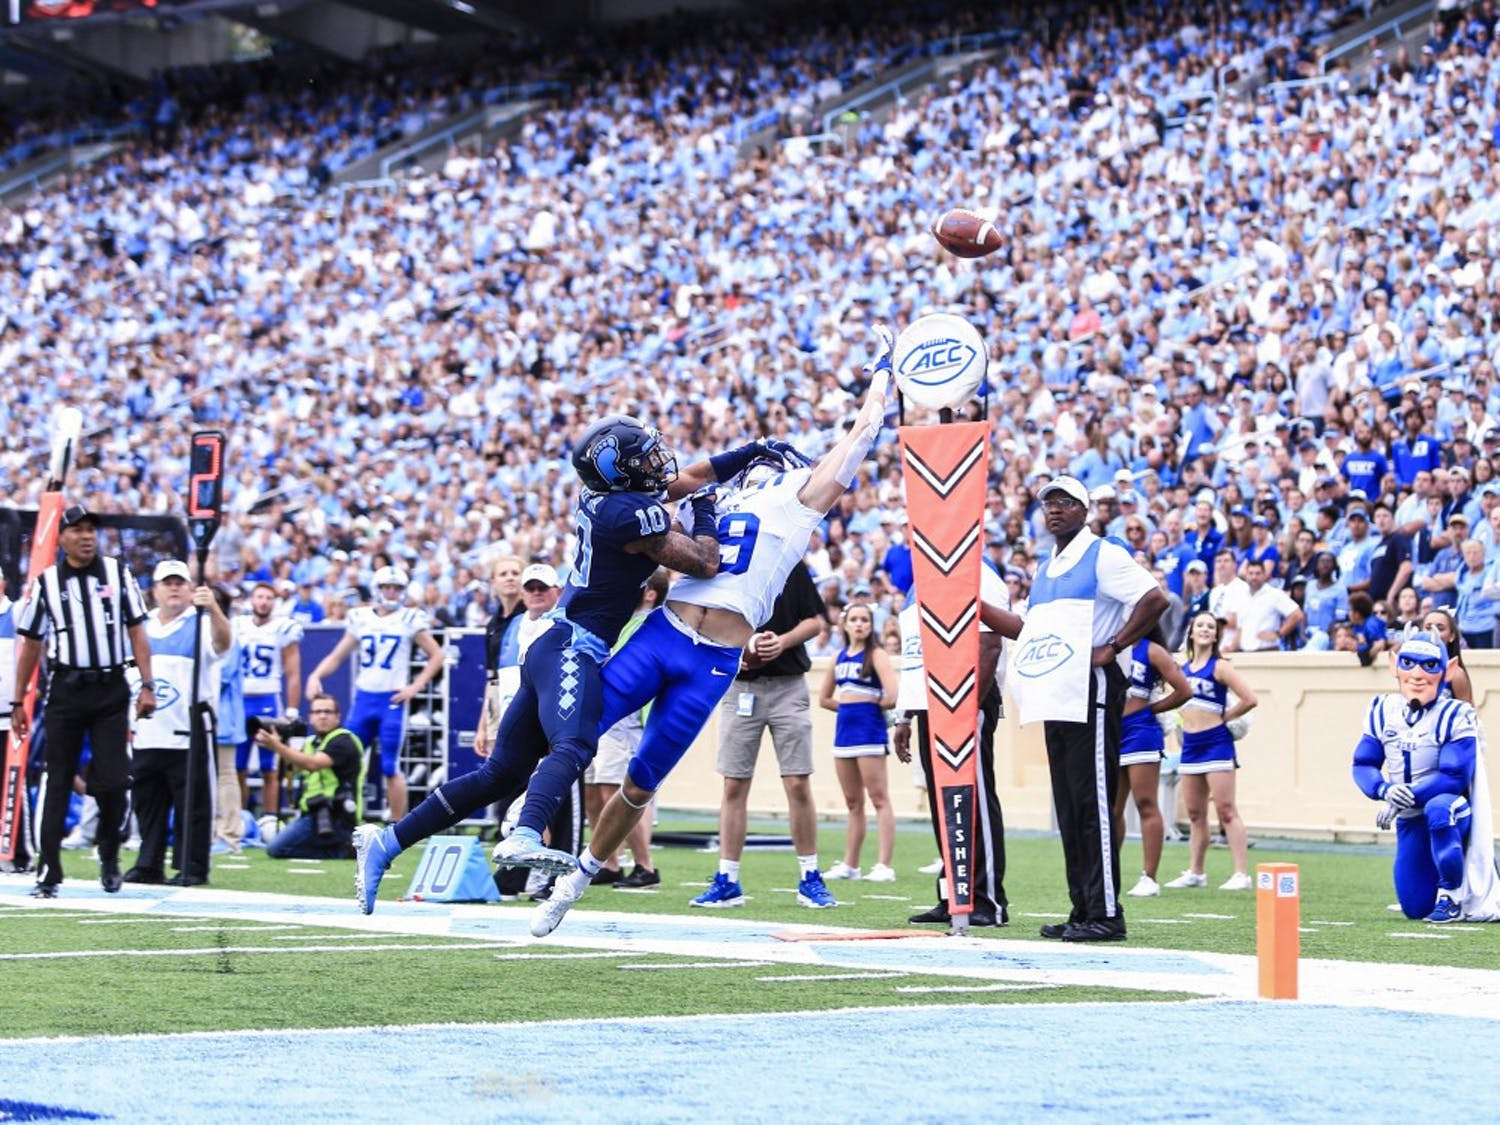 Senior wide receiver Jake Bobo spoke earlier this week about how the intensity of the crowd noise Saturday at Kenan Memoral Stadium impacts the offense.